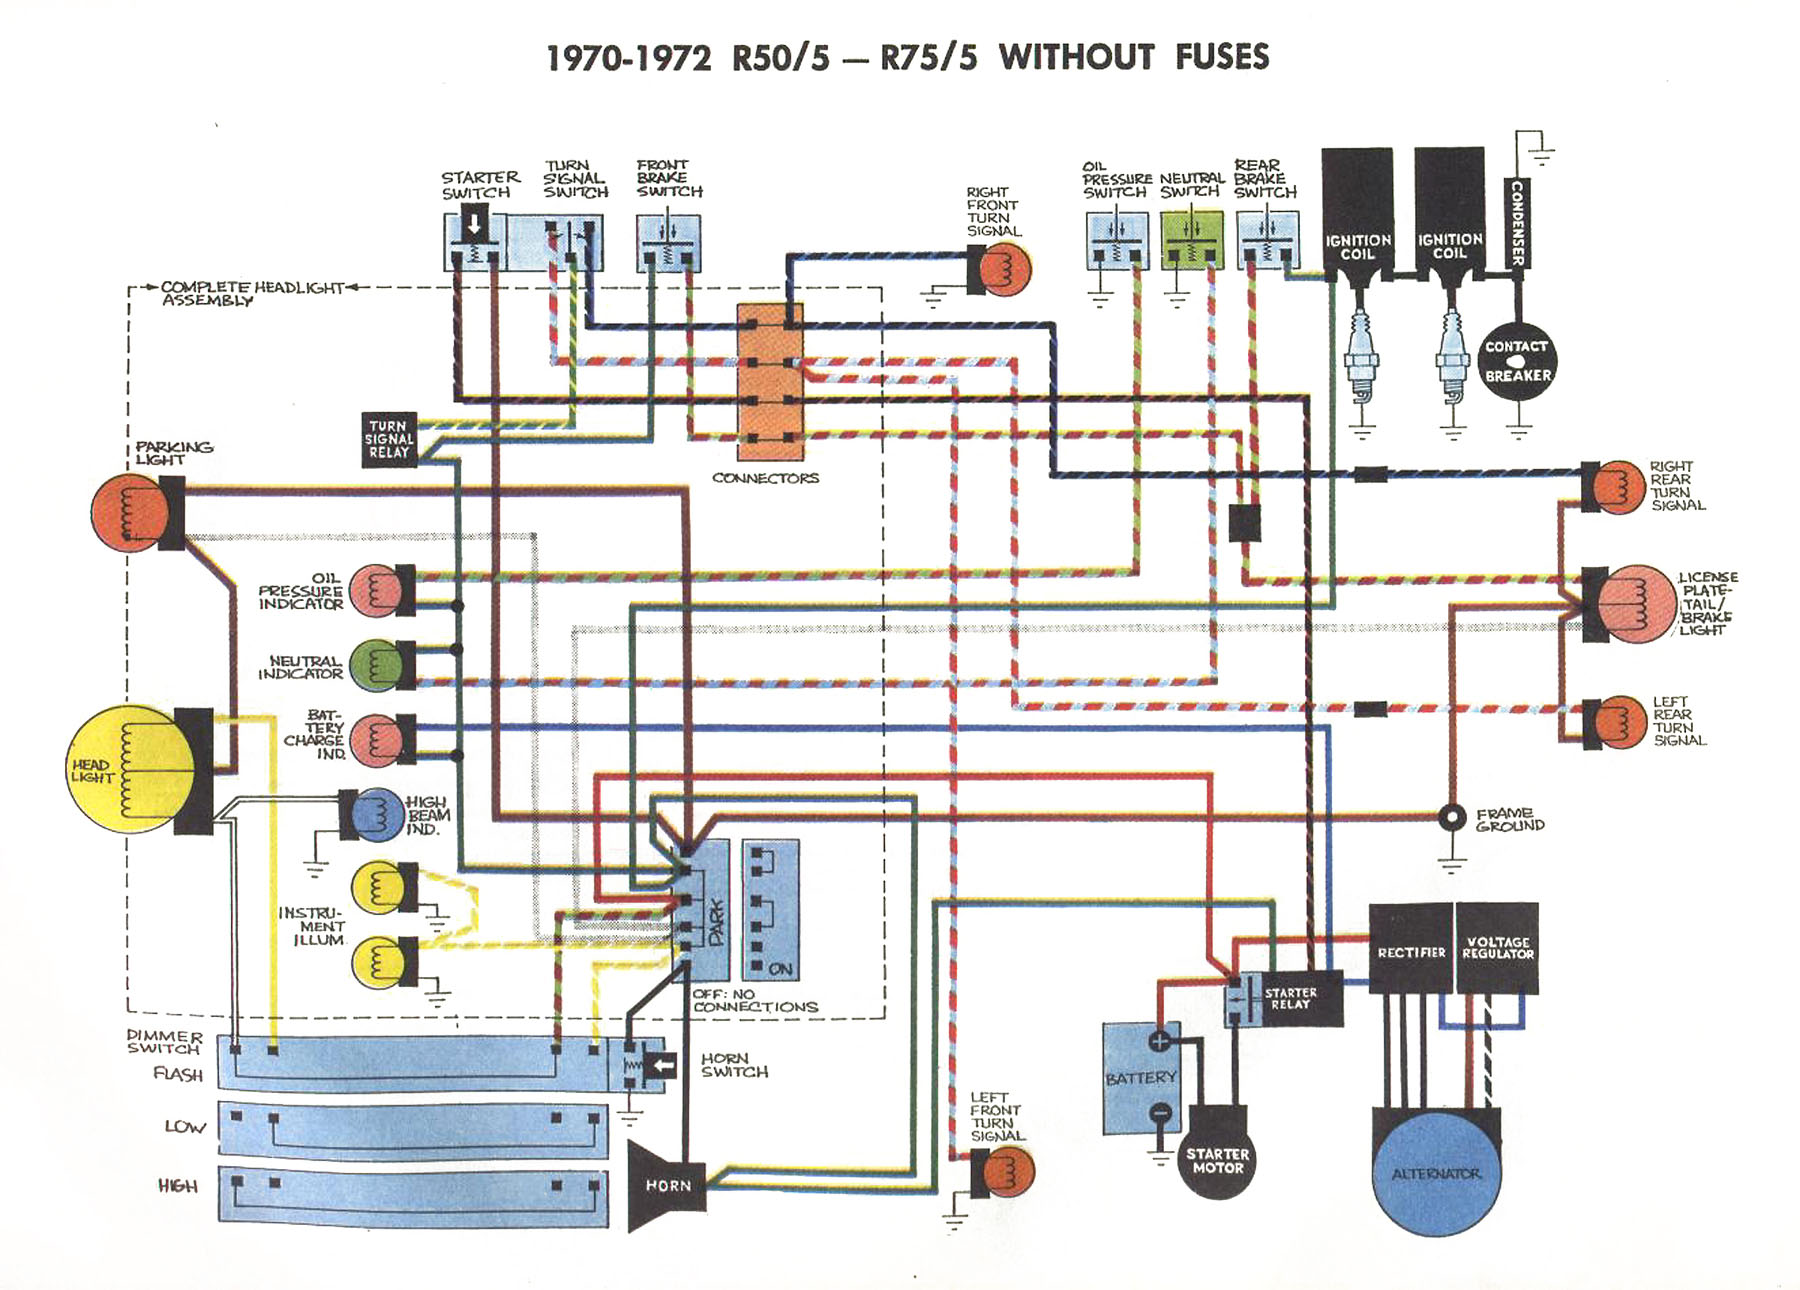 5_unfused_schematic?resize=665%2C477 1974 yamaha xs650 wiring diagram wiring diagram XS2 Bow String at gsmportal.co